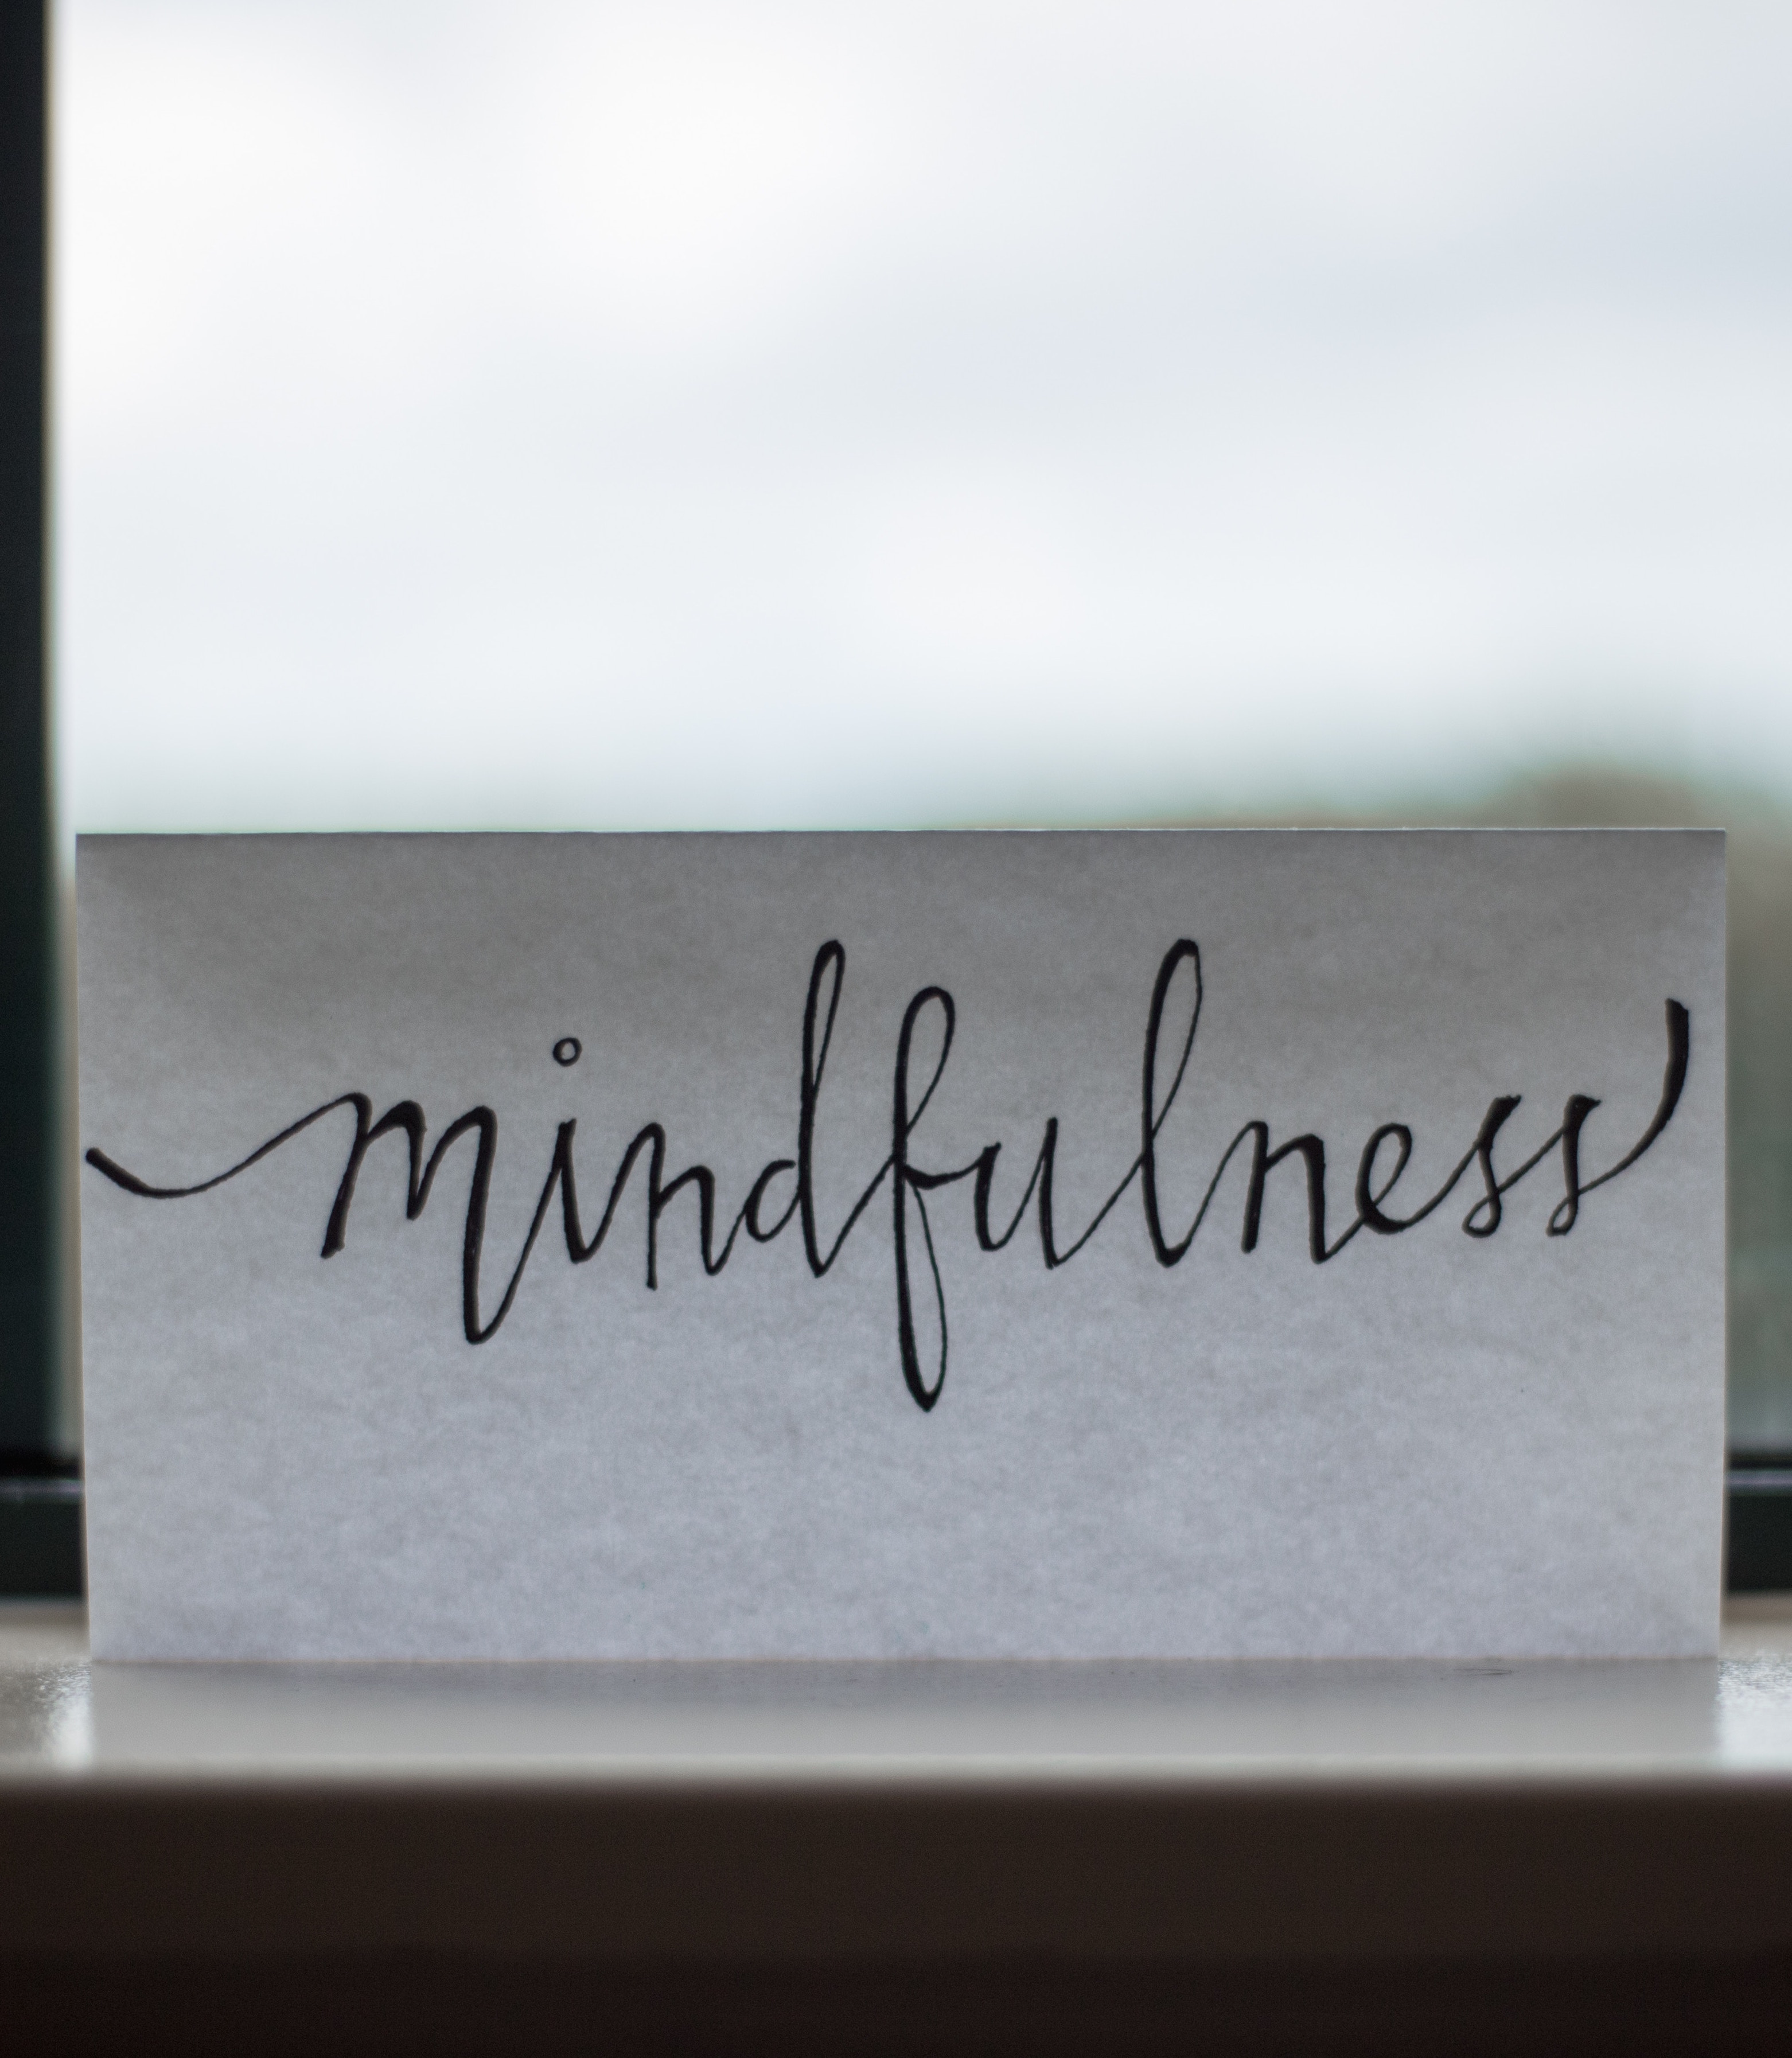 Mindfulness for Wellbeing (Mindfulness-Based CognitiveTherapy)